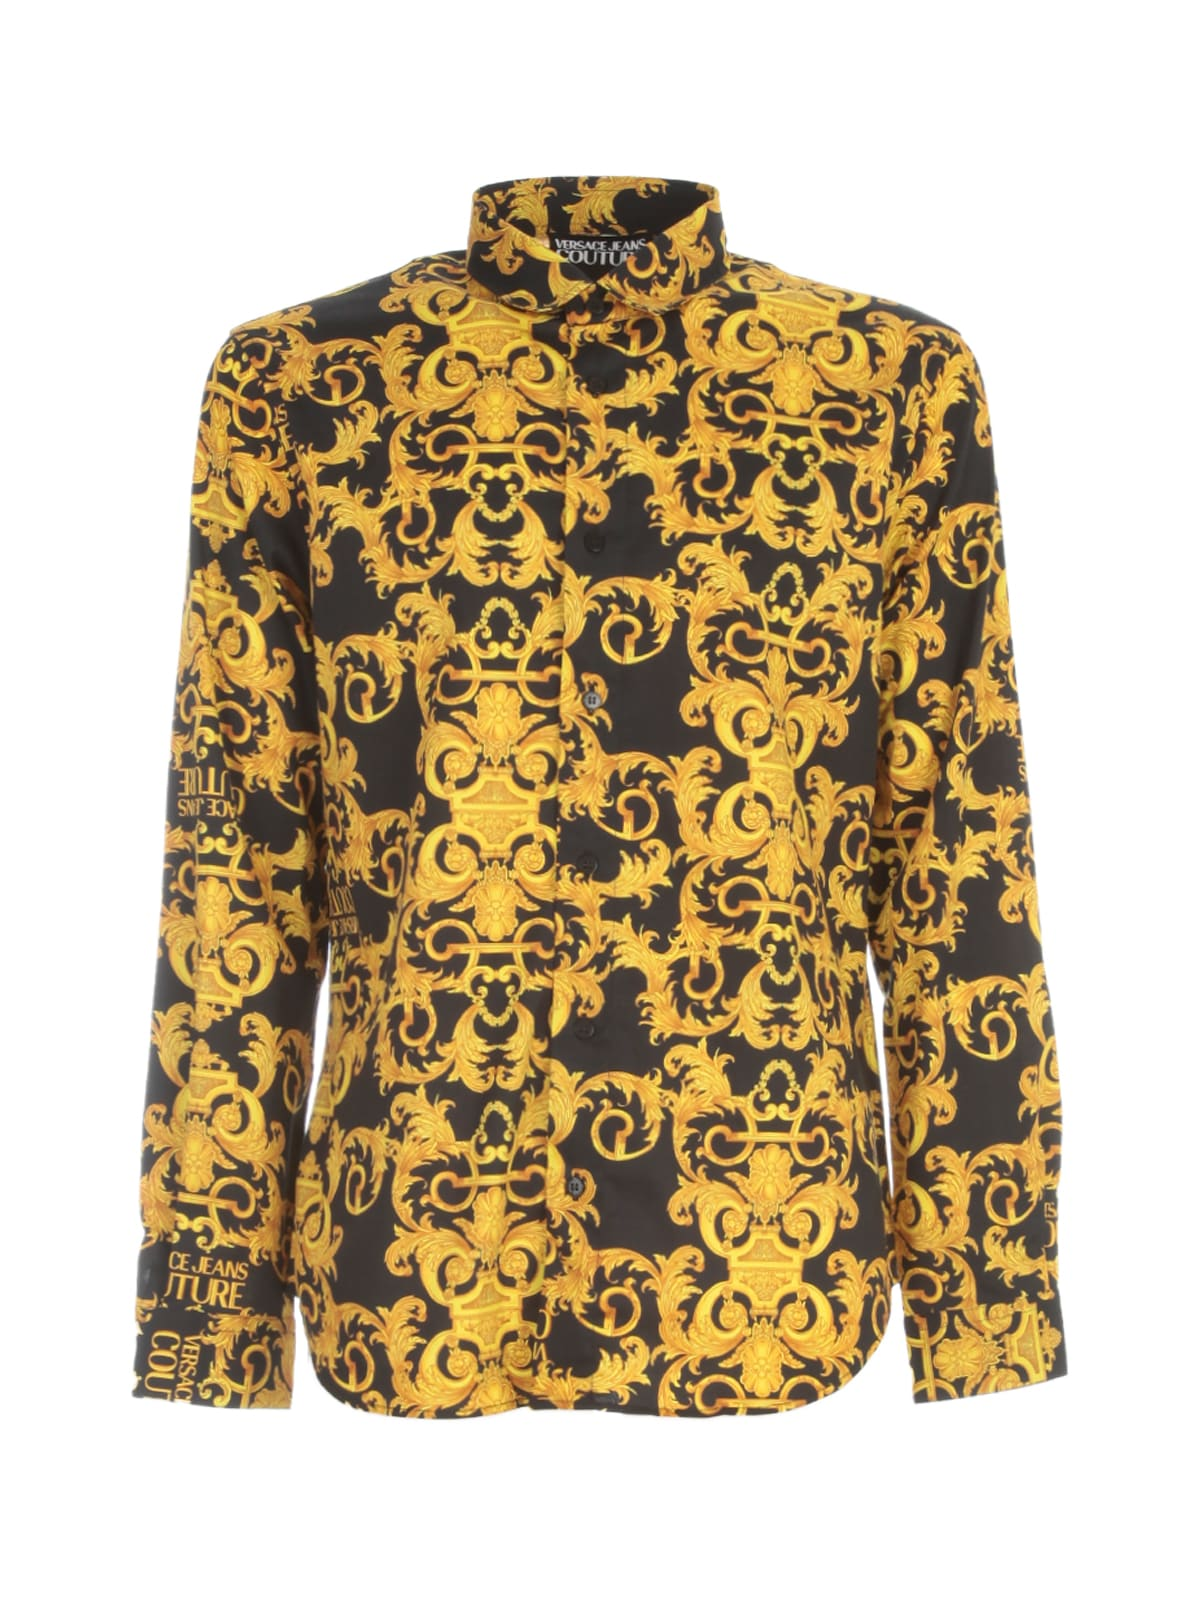 Versace Jeans Couture Slim Print Logo Baroque Cotton Twill Shirt In Nero